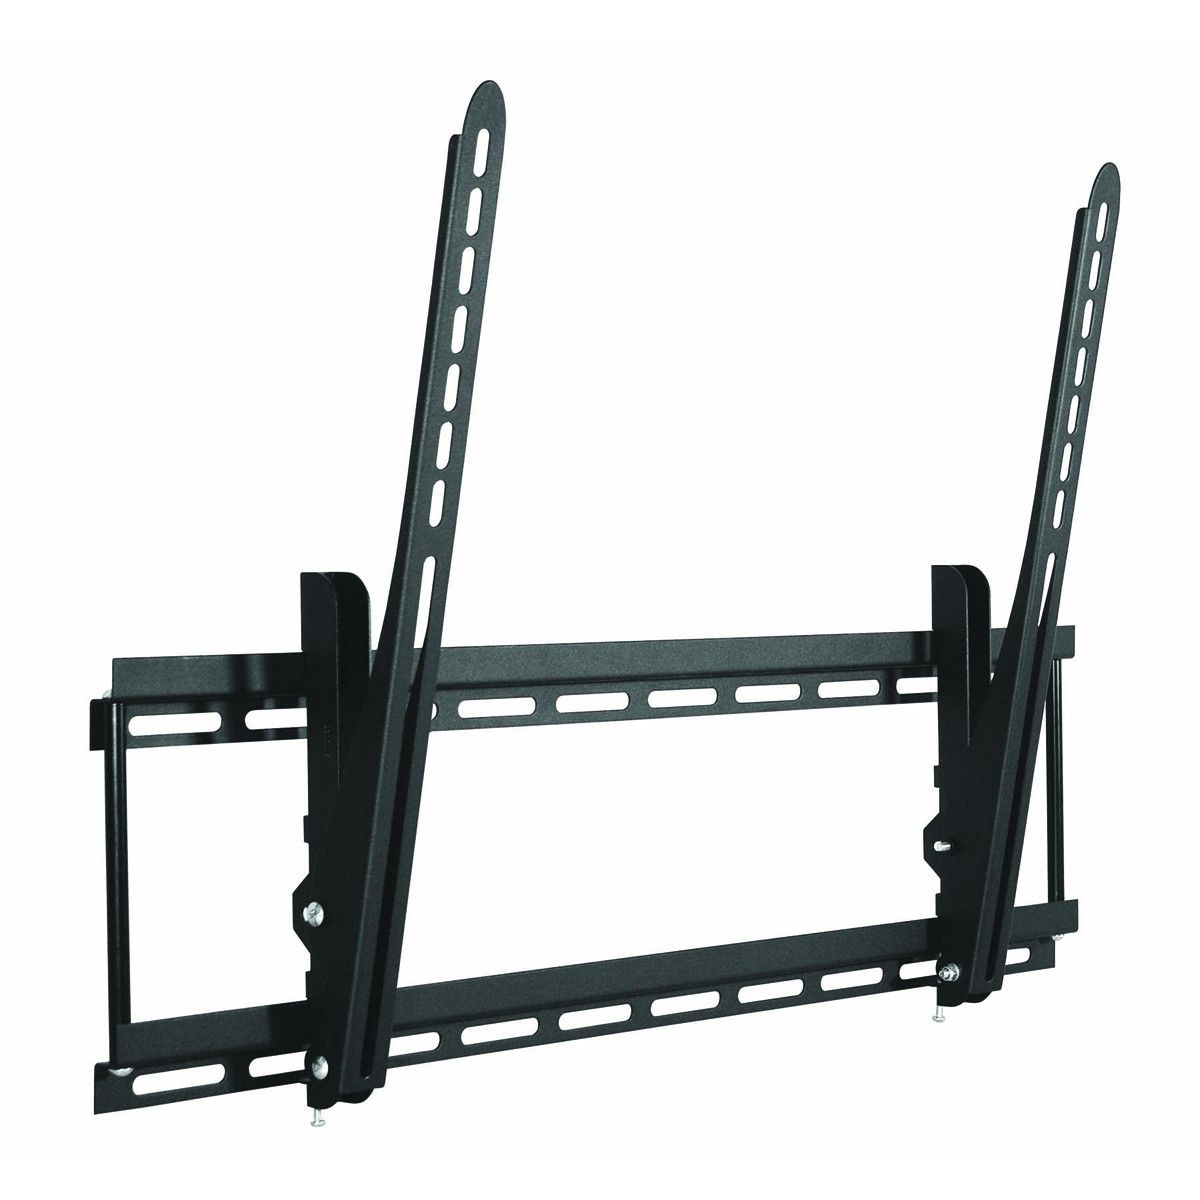 Get The Large Tilt Mount TV Bracket From Harbor Freight Tools!